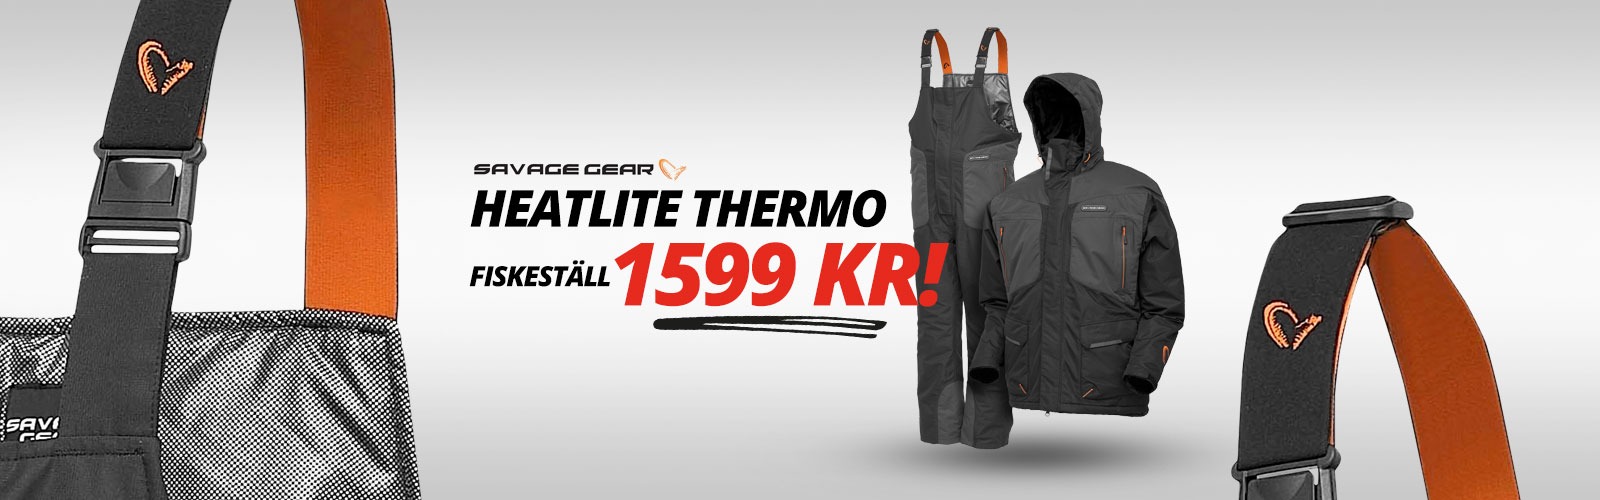 Savage Gear Fiskeställ heatlite thermo